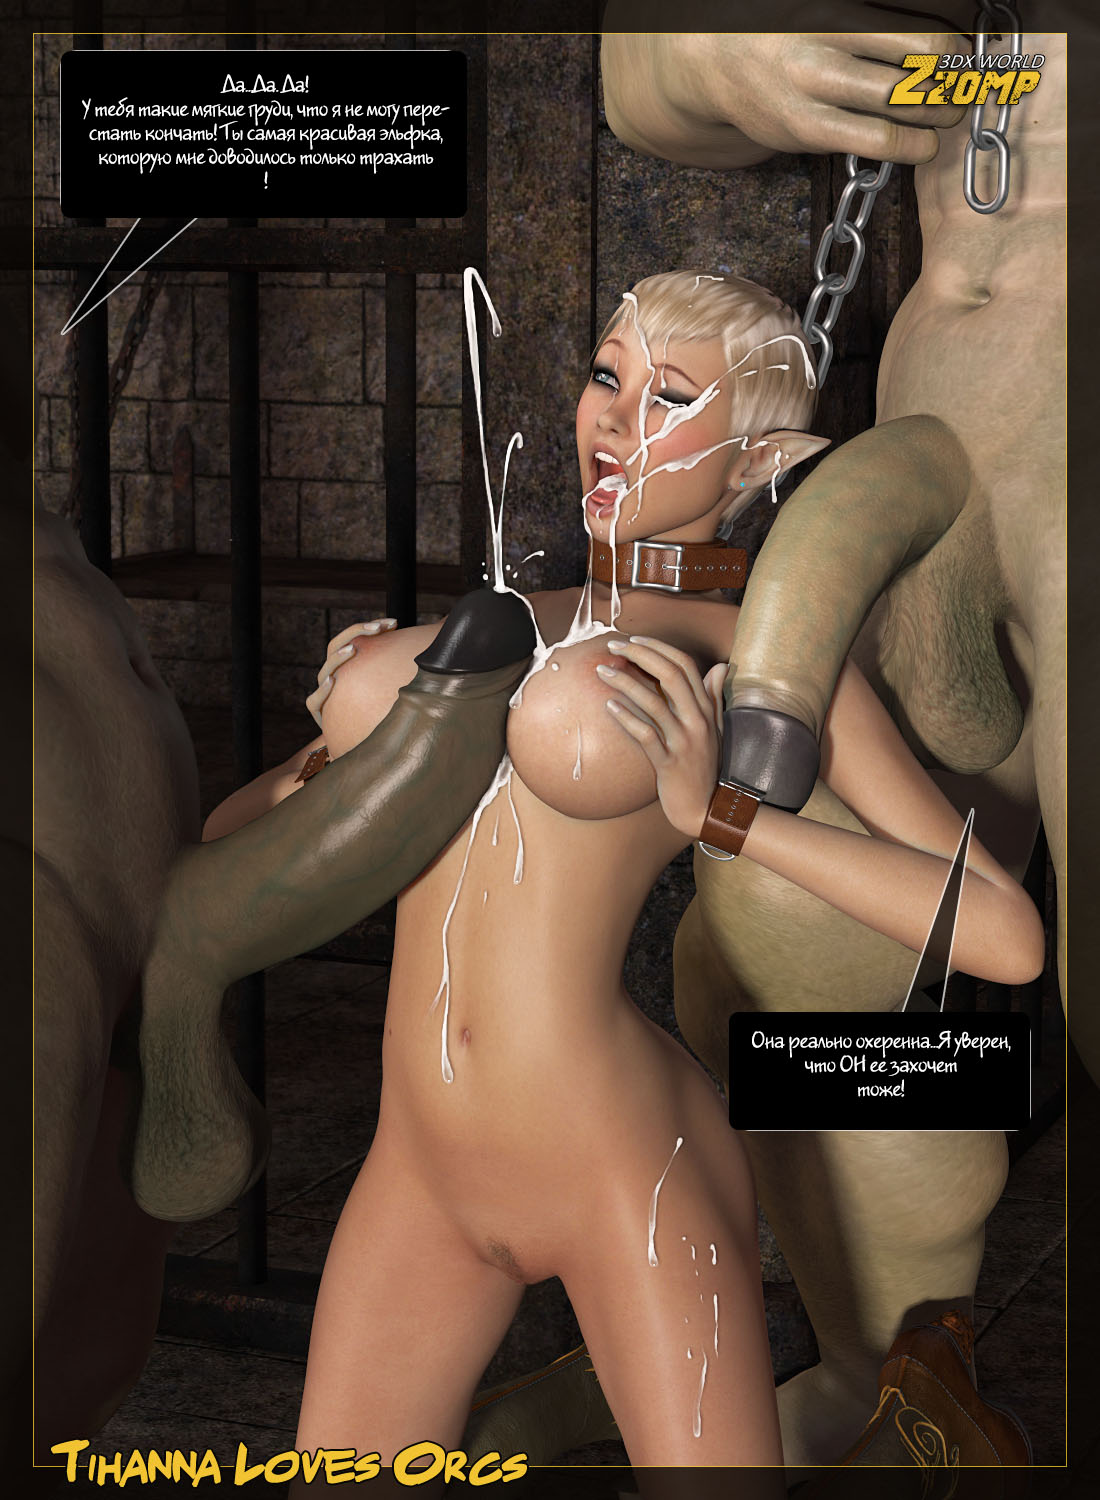 Elf fucked by orcs exposed scenes